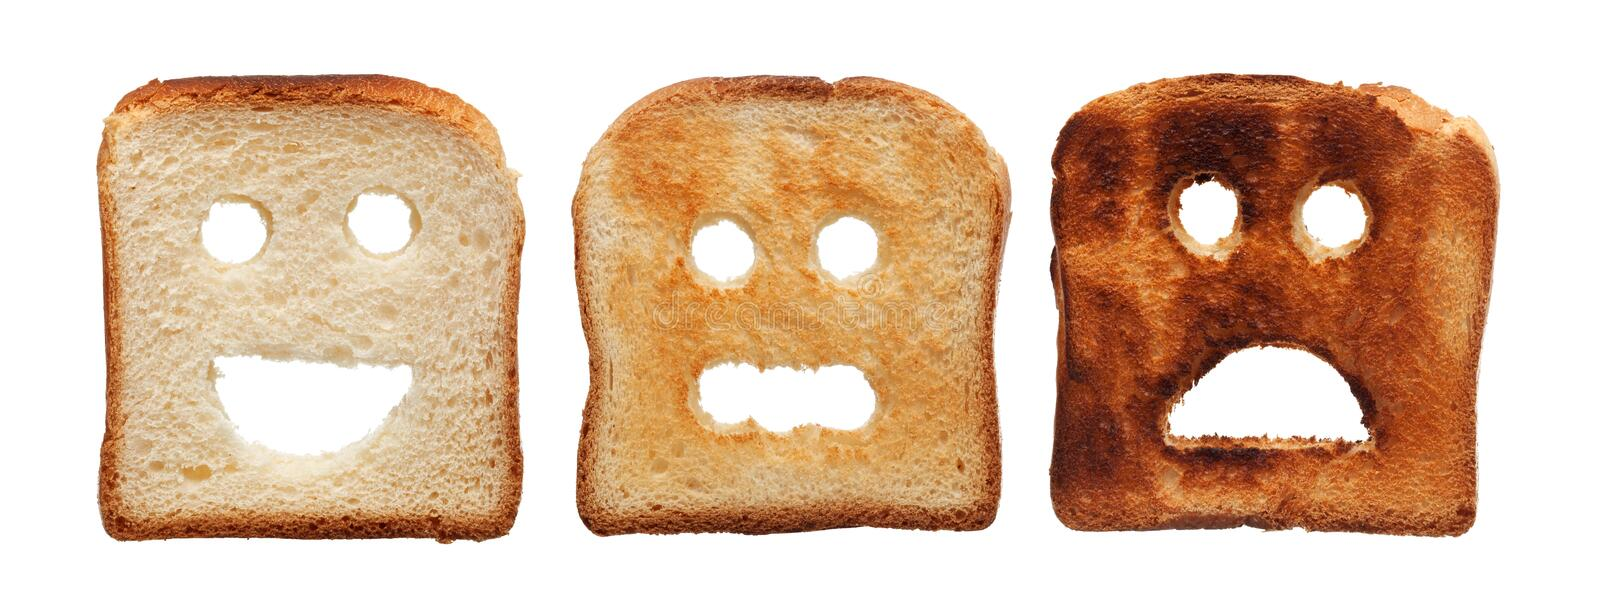 Toast bread differently burned stock photos